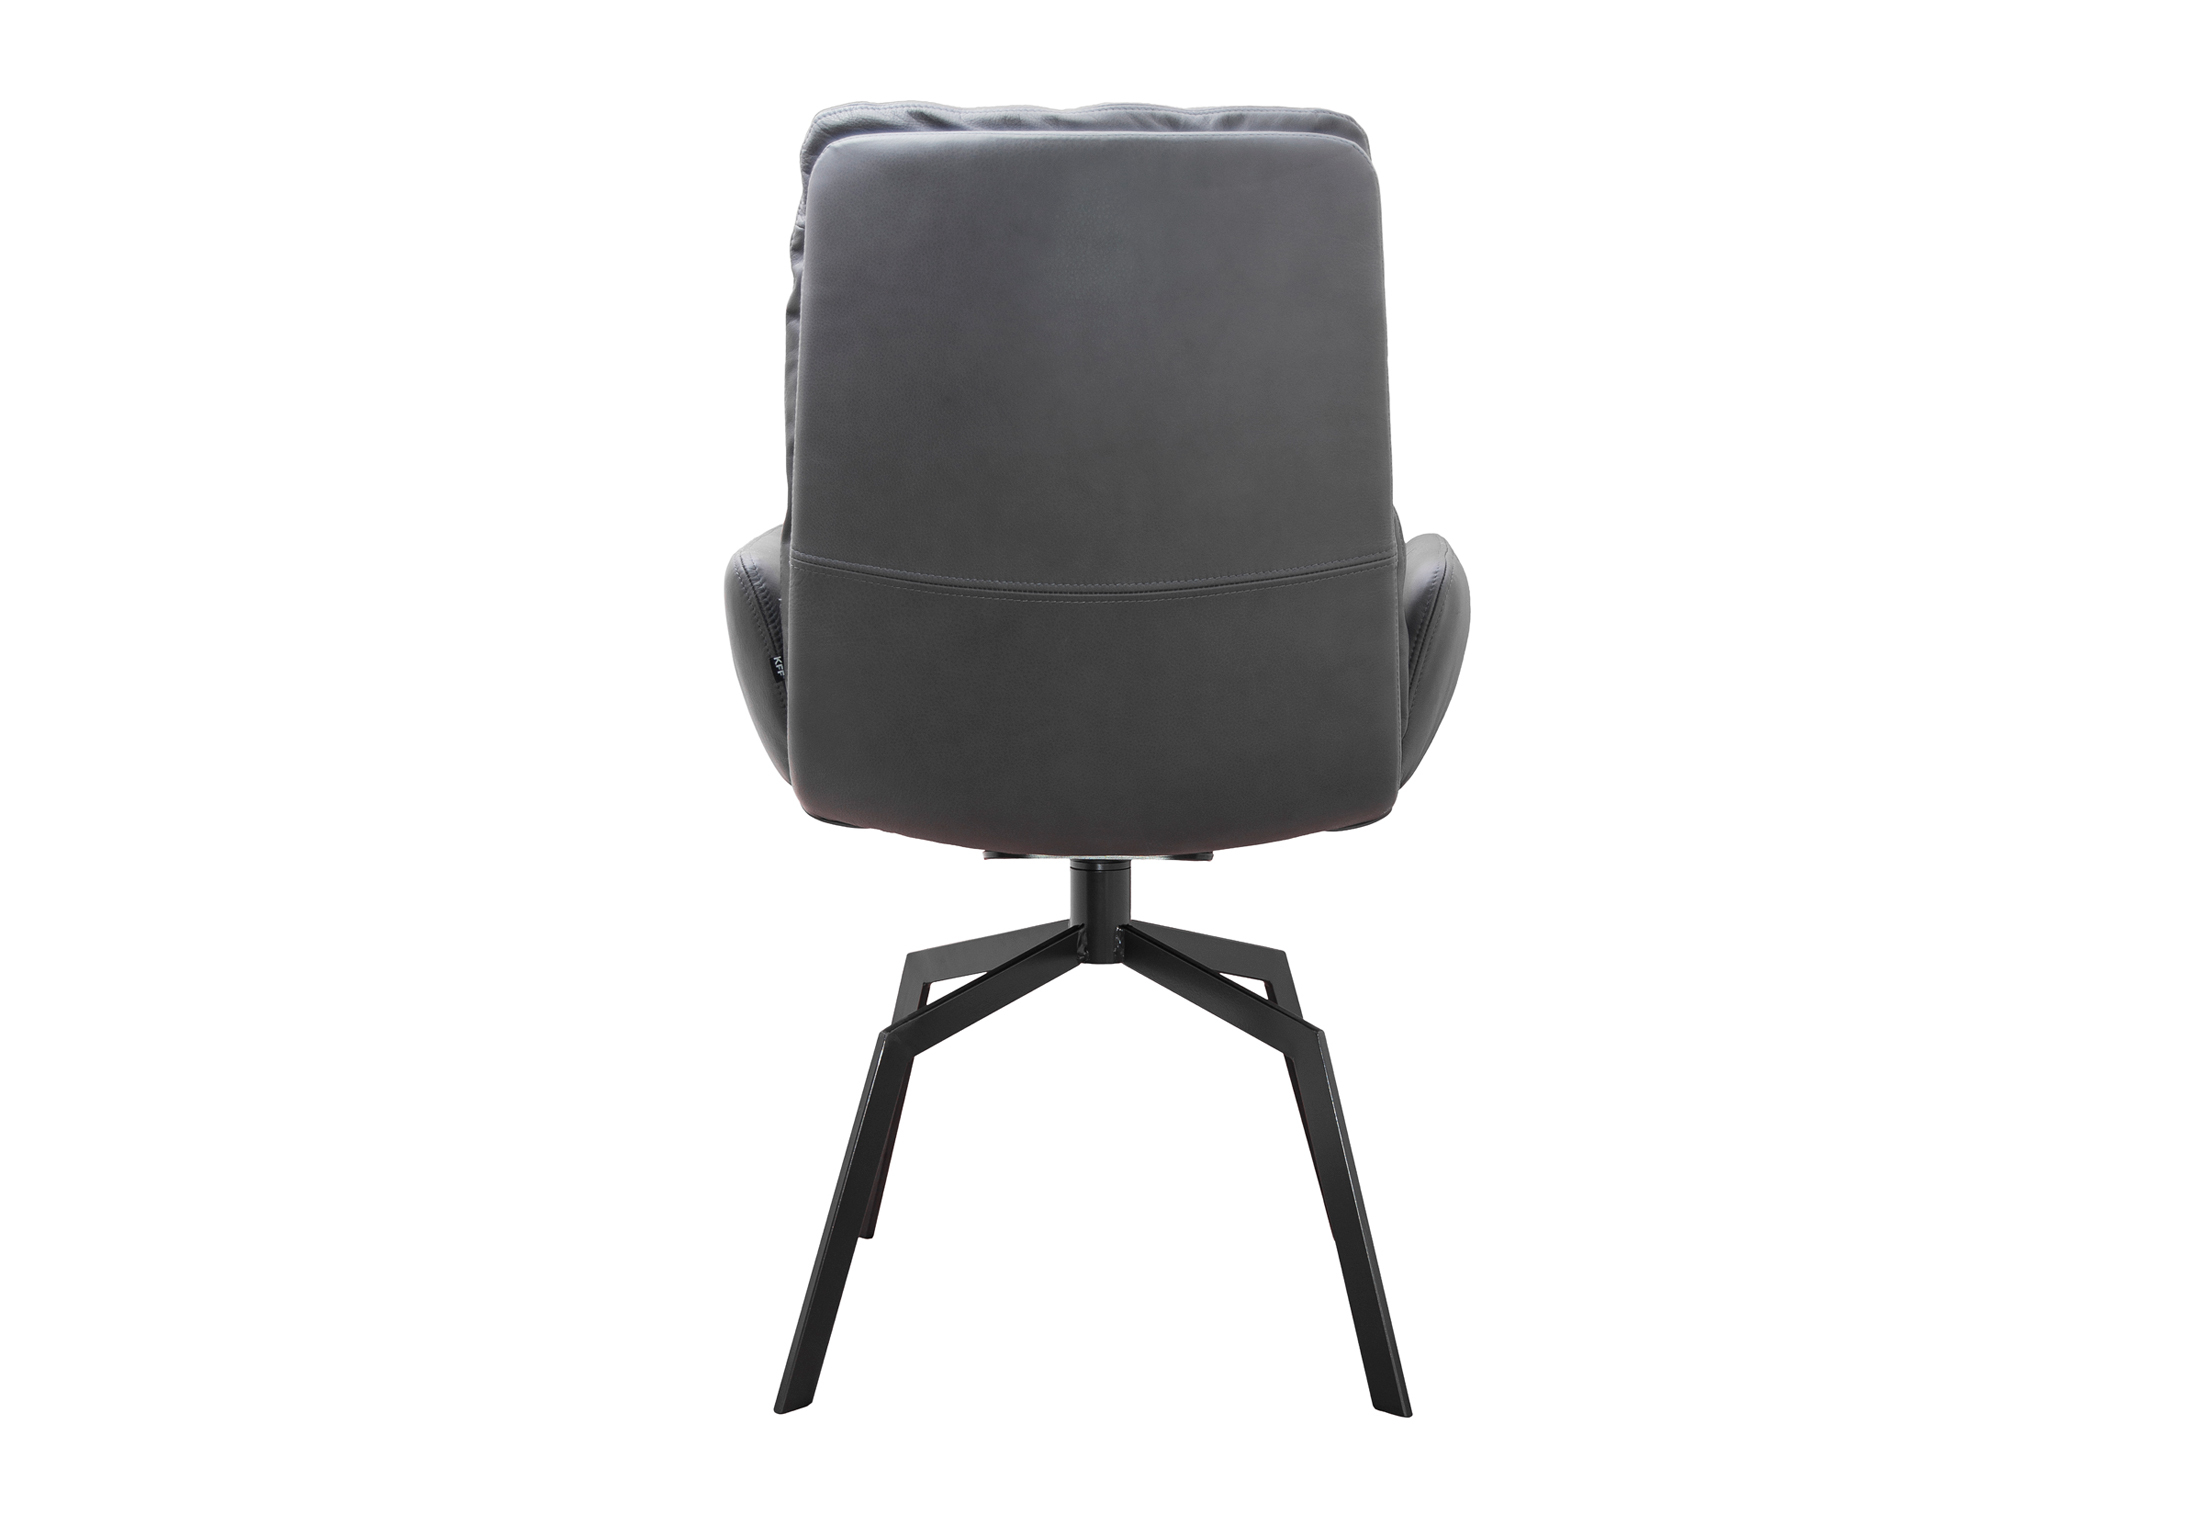 office furniture legs. arva chair with legs office furniture